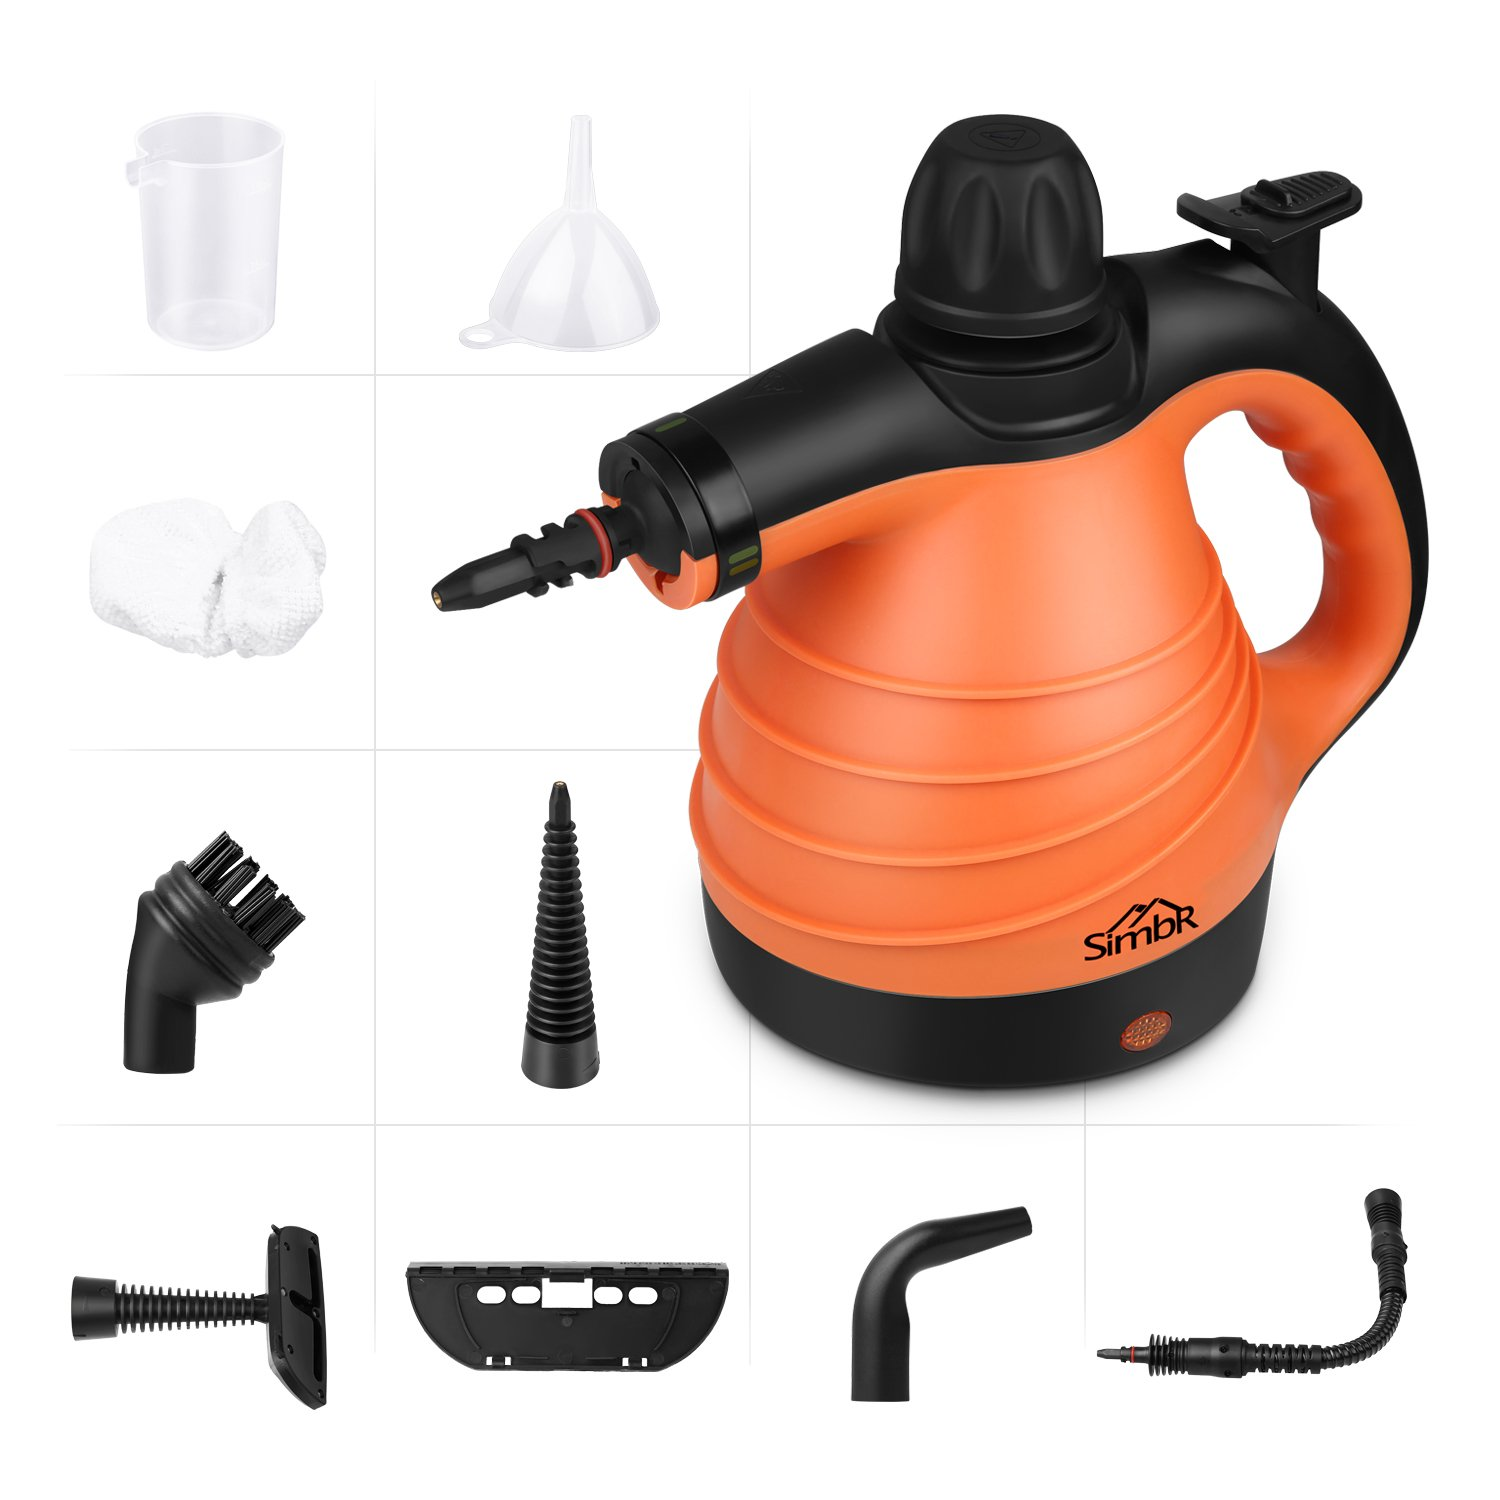 SIMBR Handheld Steam Cleaner, Multi-Purpose Pressurized Steamer 1050W with 9 Accessories for Stain Removal, Carpets, Curtains, Car Seats, Kitchen, Bathroom and More